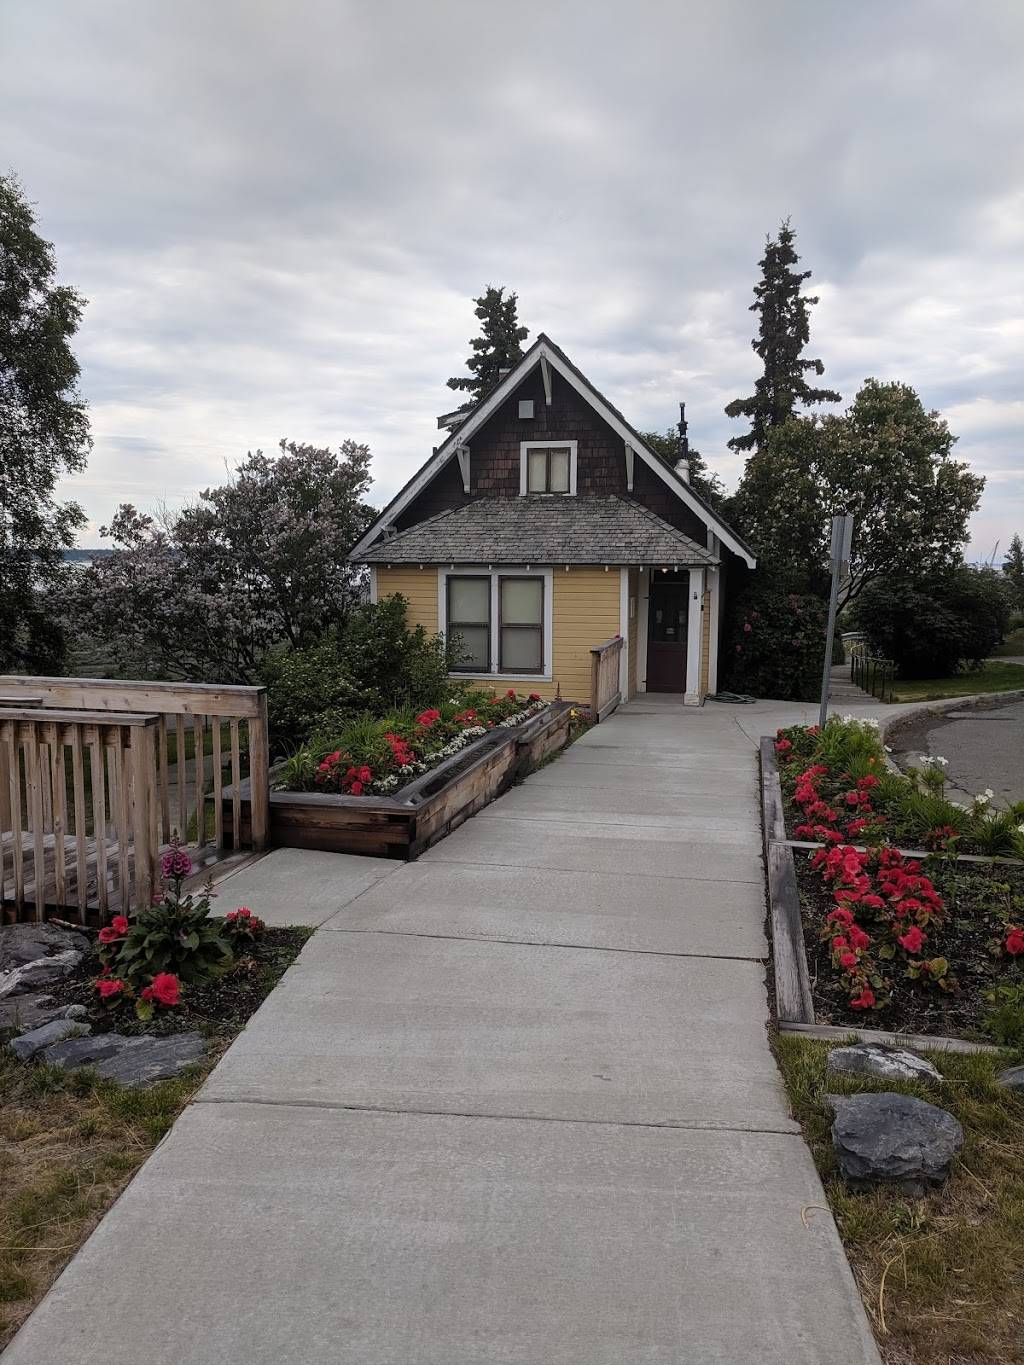 Oscar Anderson House Museum - museum  | Photo 3 of 10 | Address: 420 M St, Anchorage, AK 99501, USA | Phone: (907) 274-2336